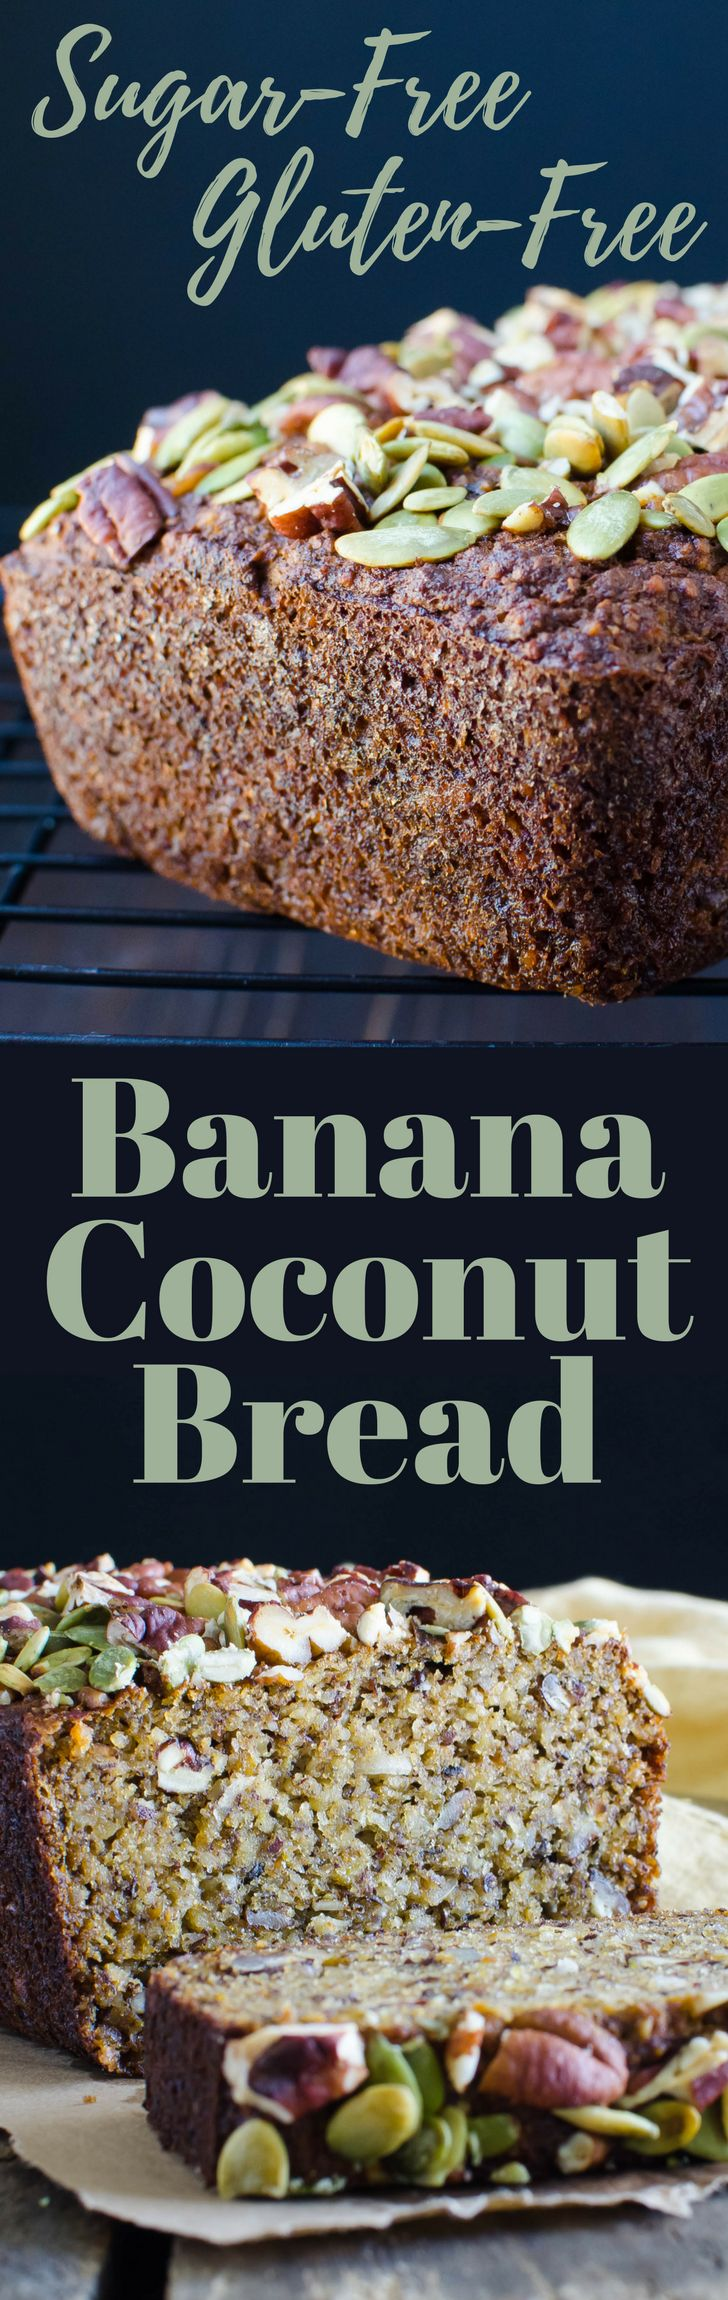 #ad Looking for a sugar-free banana bread recipe? Gluten-Free Coconut Banana Bread is moist and delicious with a crunchy pepita and pecan topping.